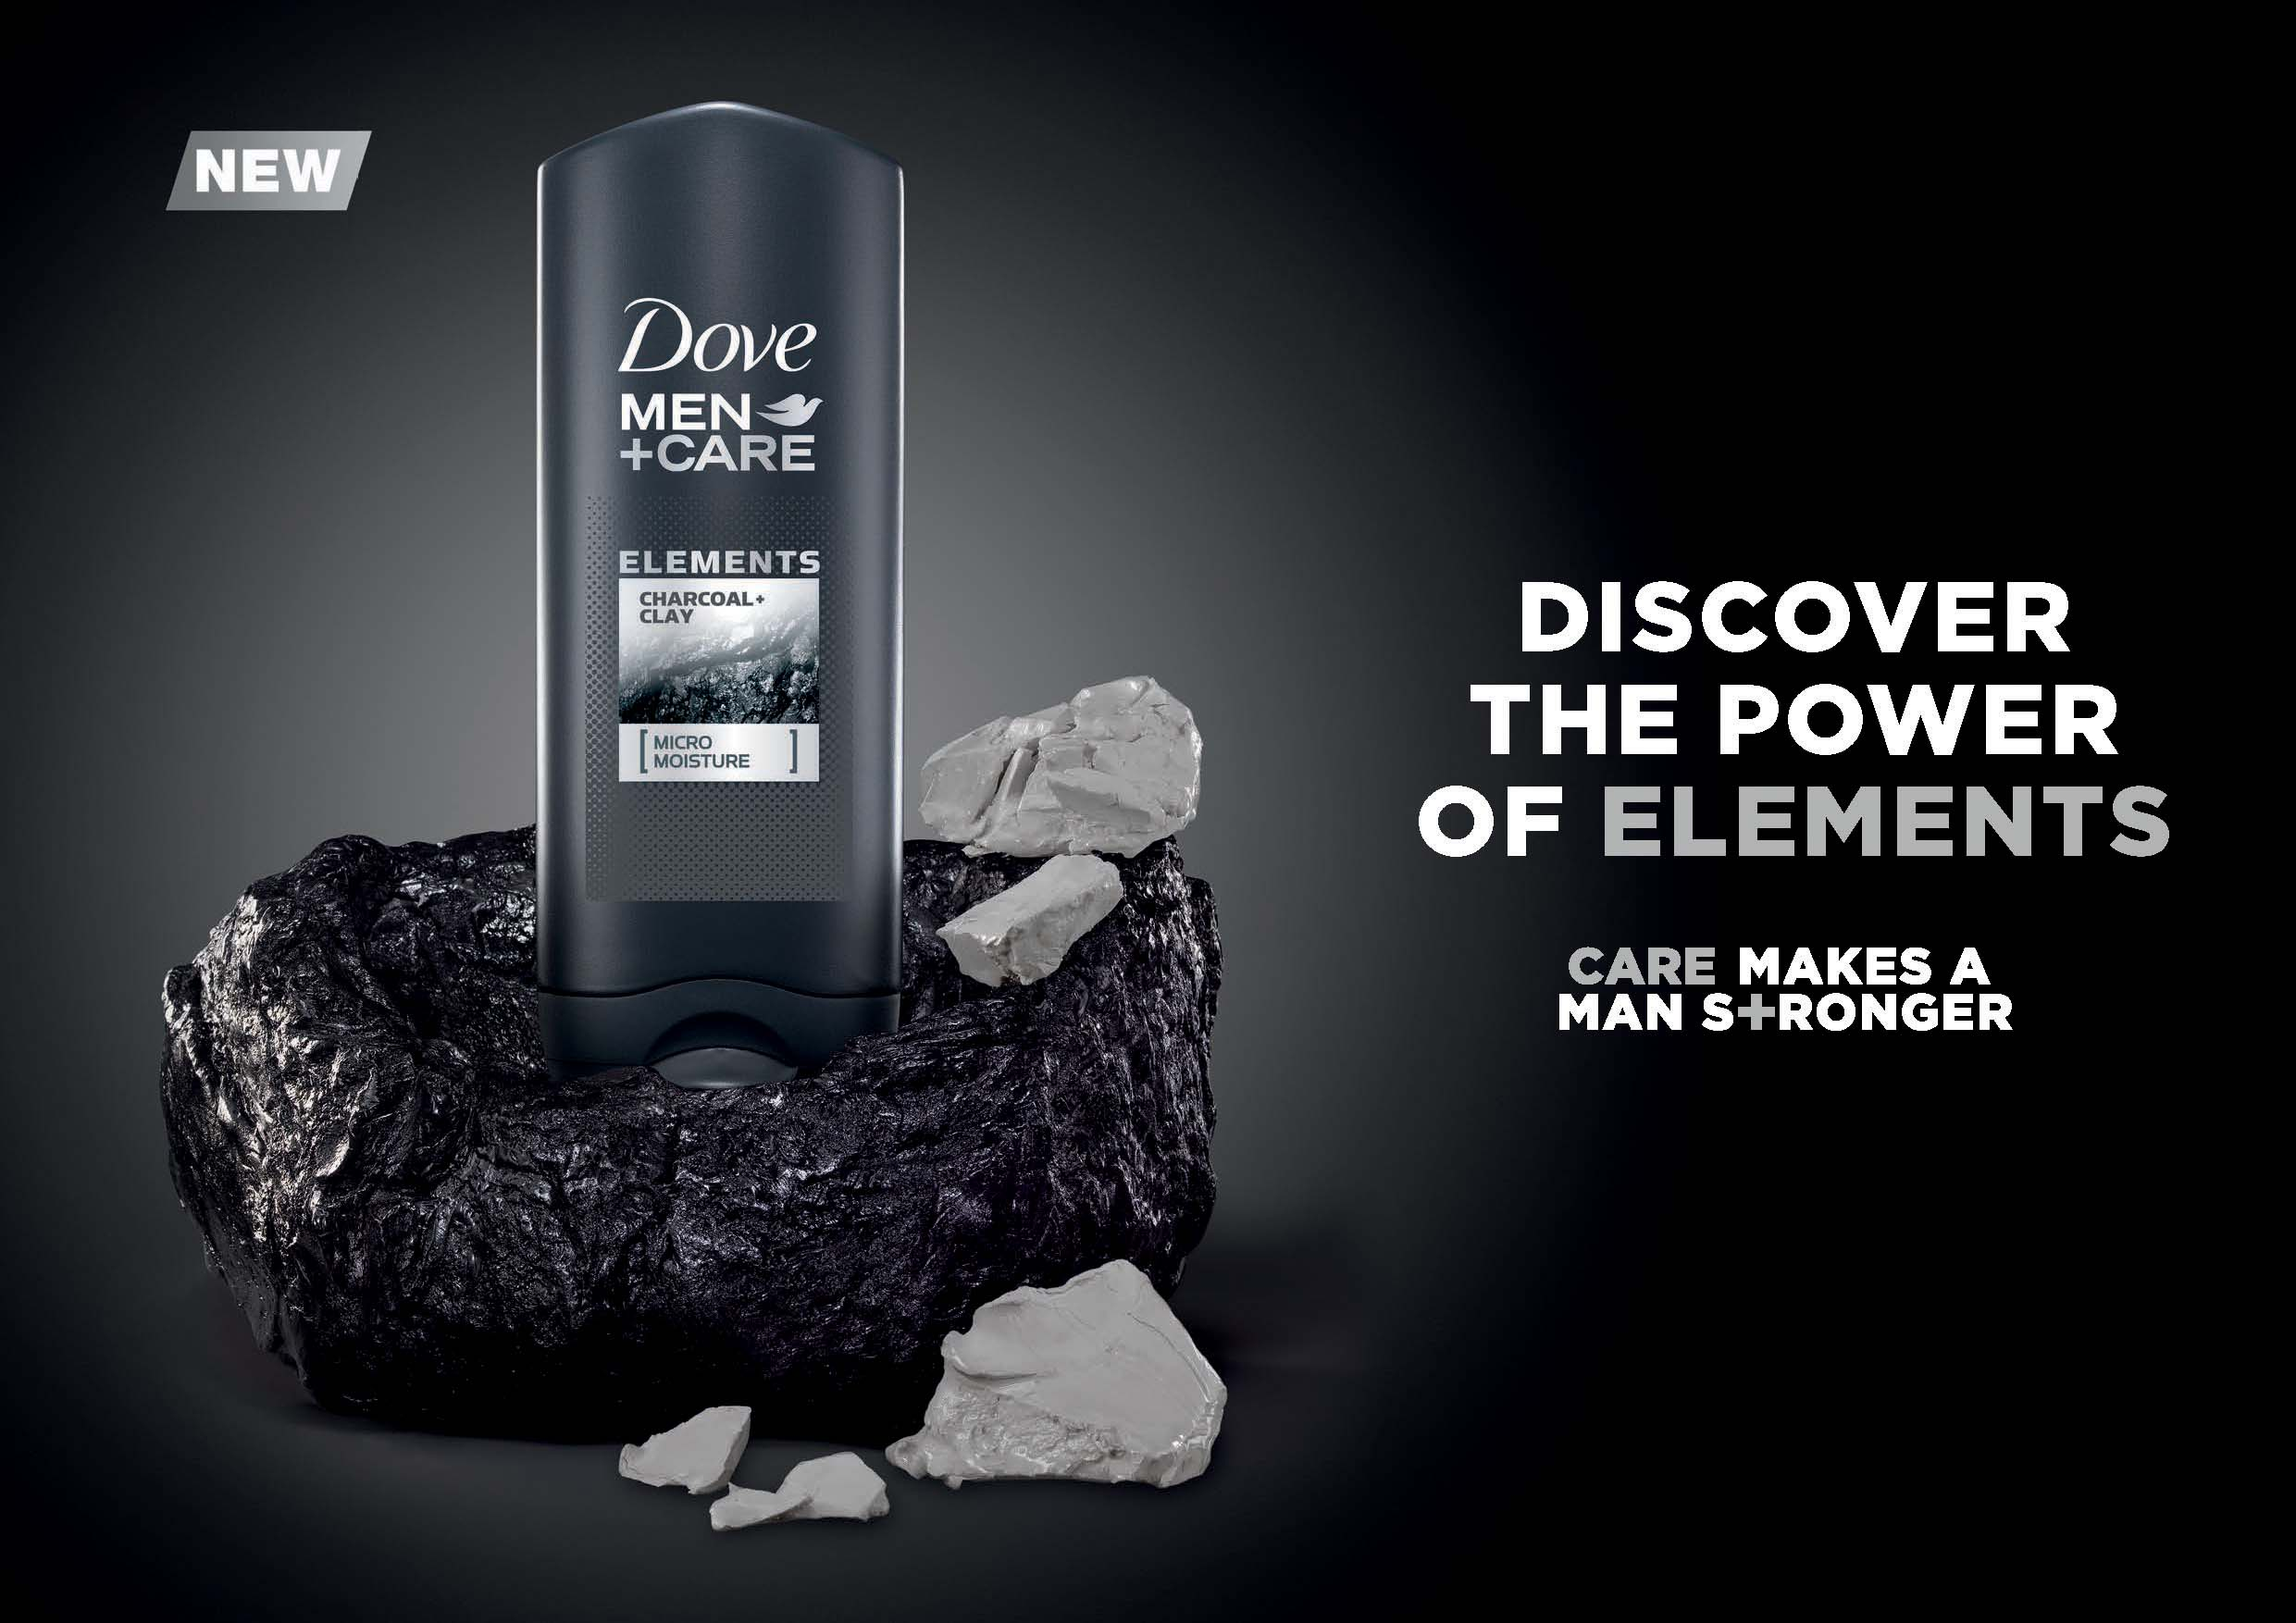 Dove Men Care Introduces New Elements Range To Bring A Boost Of Freshness To Men